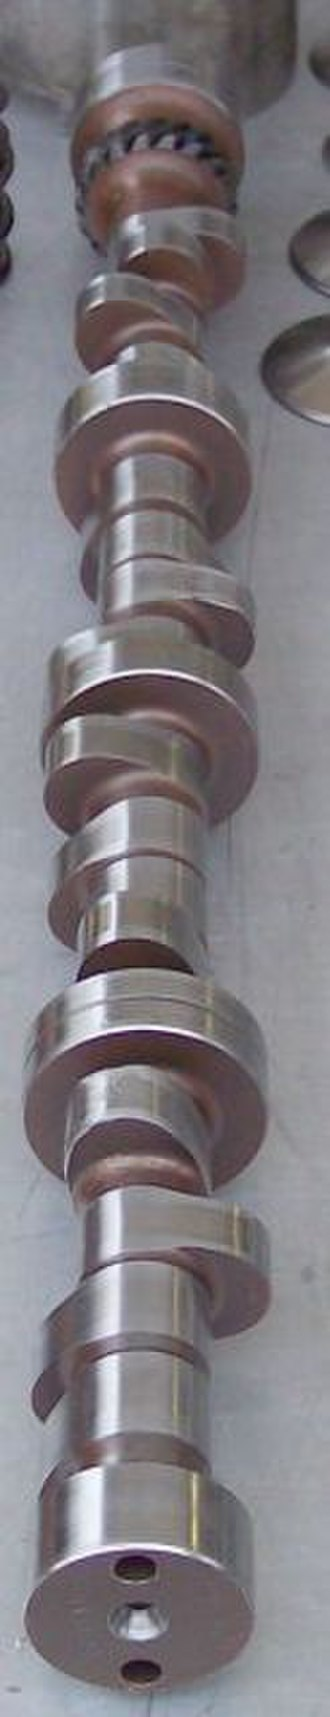 Camshaft - A steel billet racing camshaft with noticeably broad lobes (very long duration)